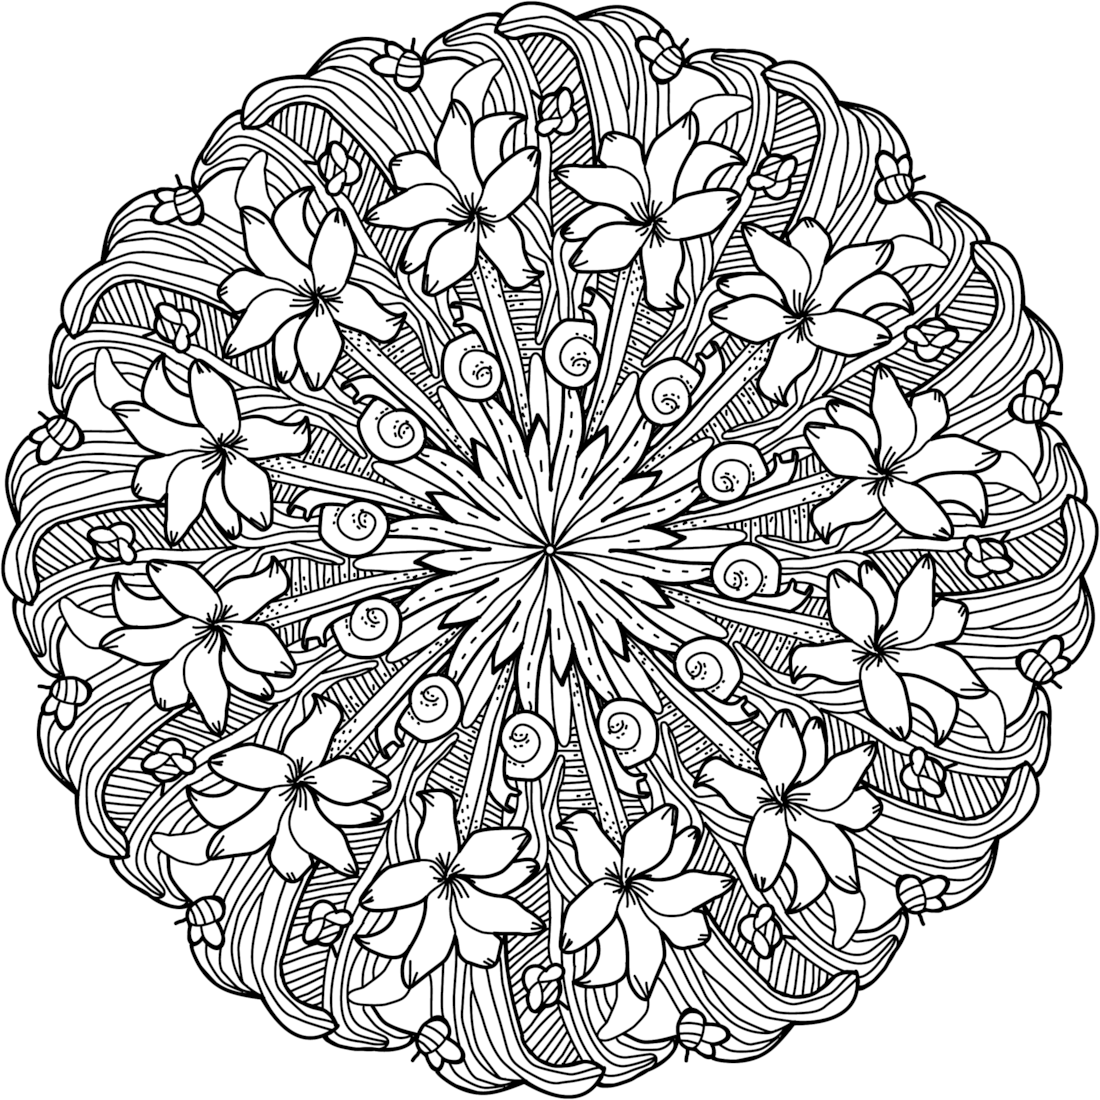 adults color childrens coloring books very hard coloring pages of flowers color adults coloring childrens books